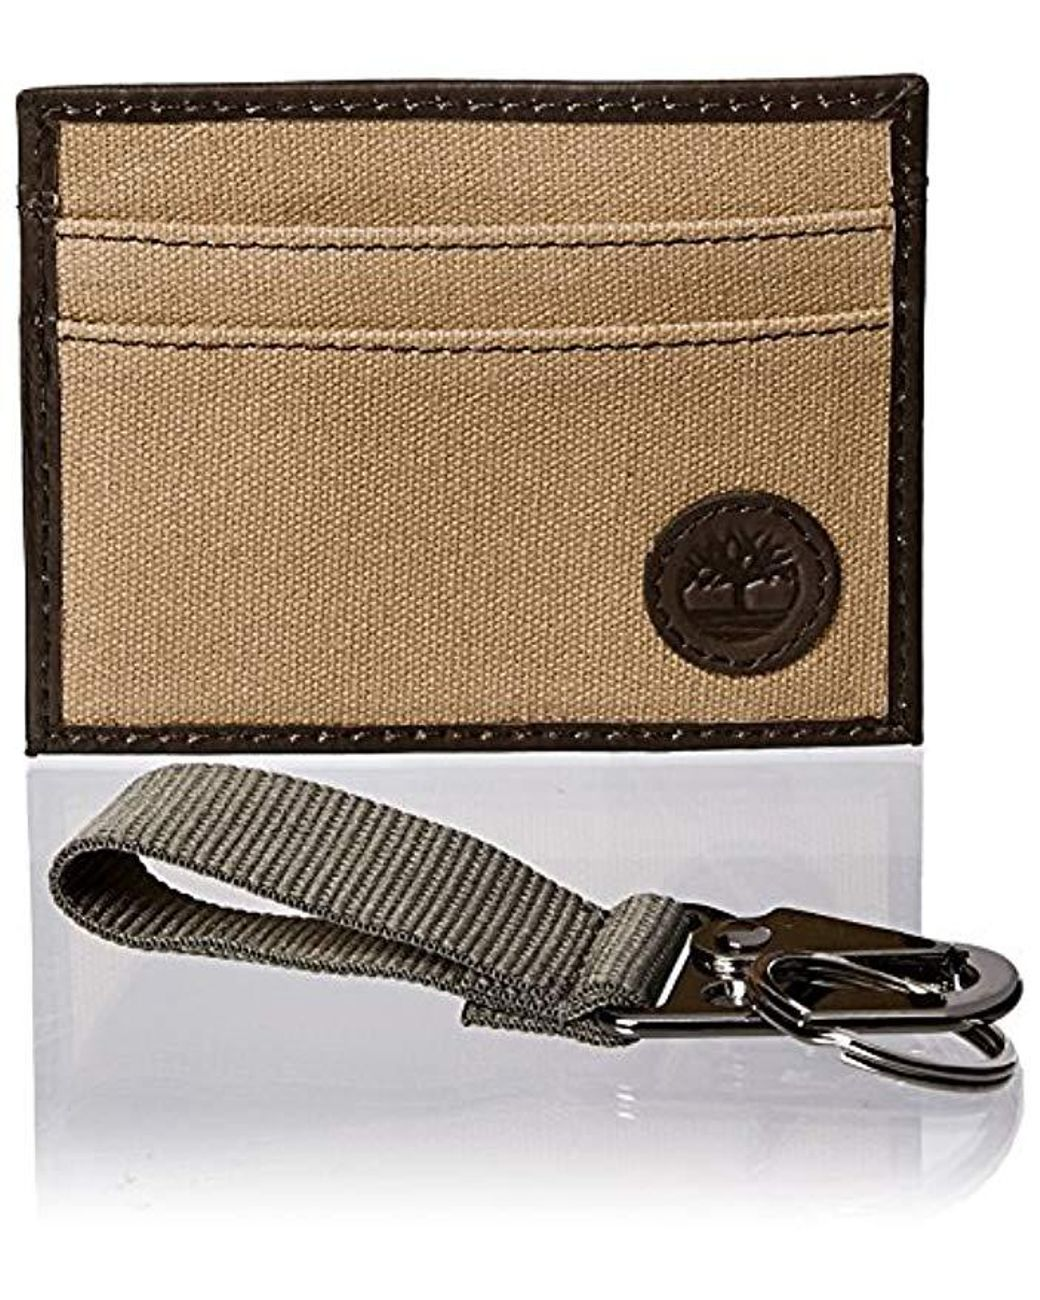 best service e883d 14484 Men's Canvas & Leather Card Case Gift Set